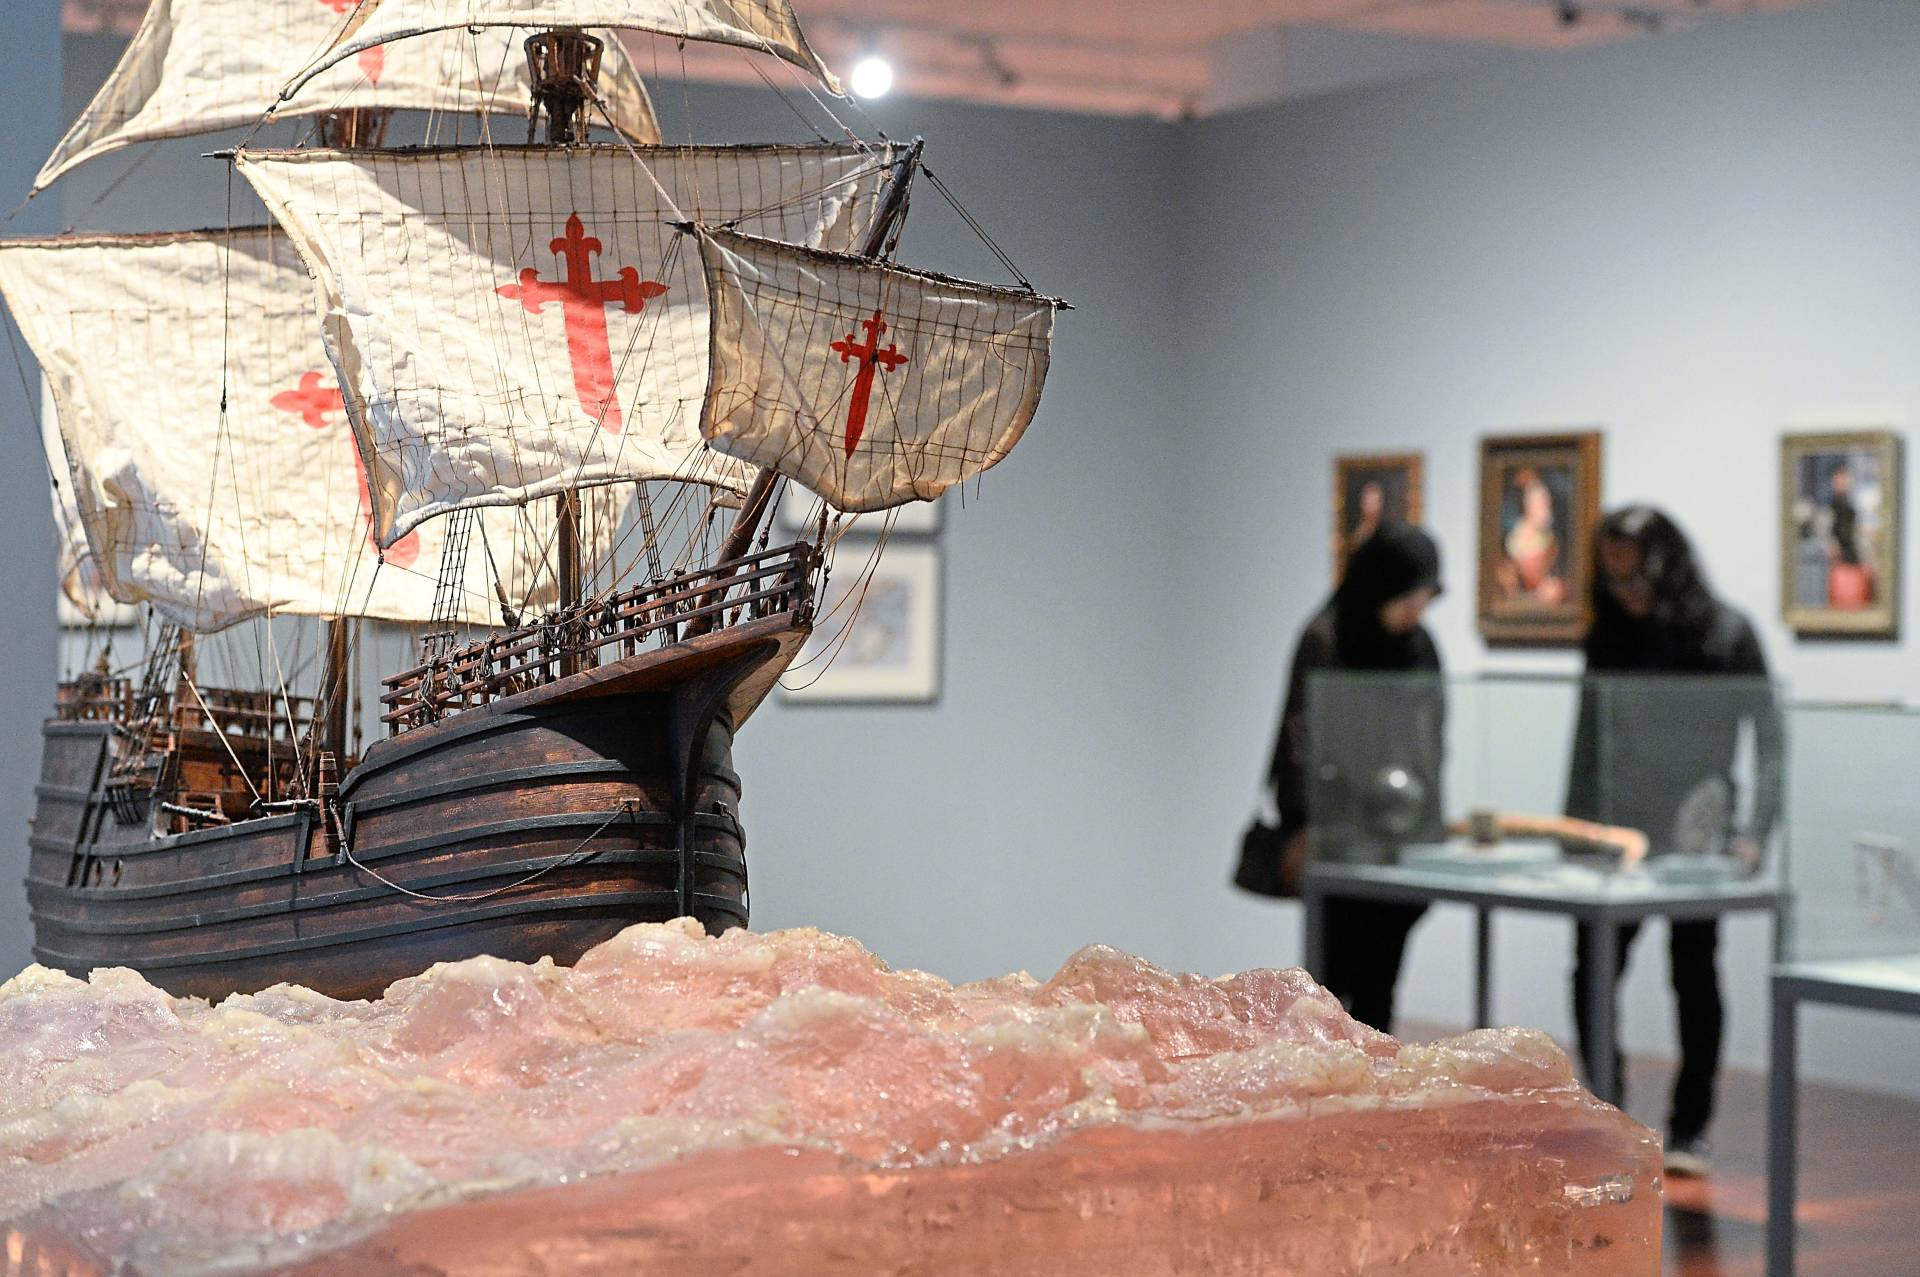 Ahmad Fuad's 'The Trinidad' (2016), a work which is part of his 'Enrique de Malacca Memorial Project'. Photo: The Star/Ong Soon Hin